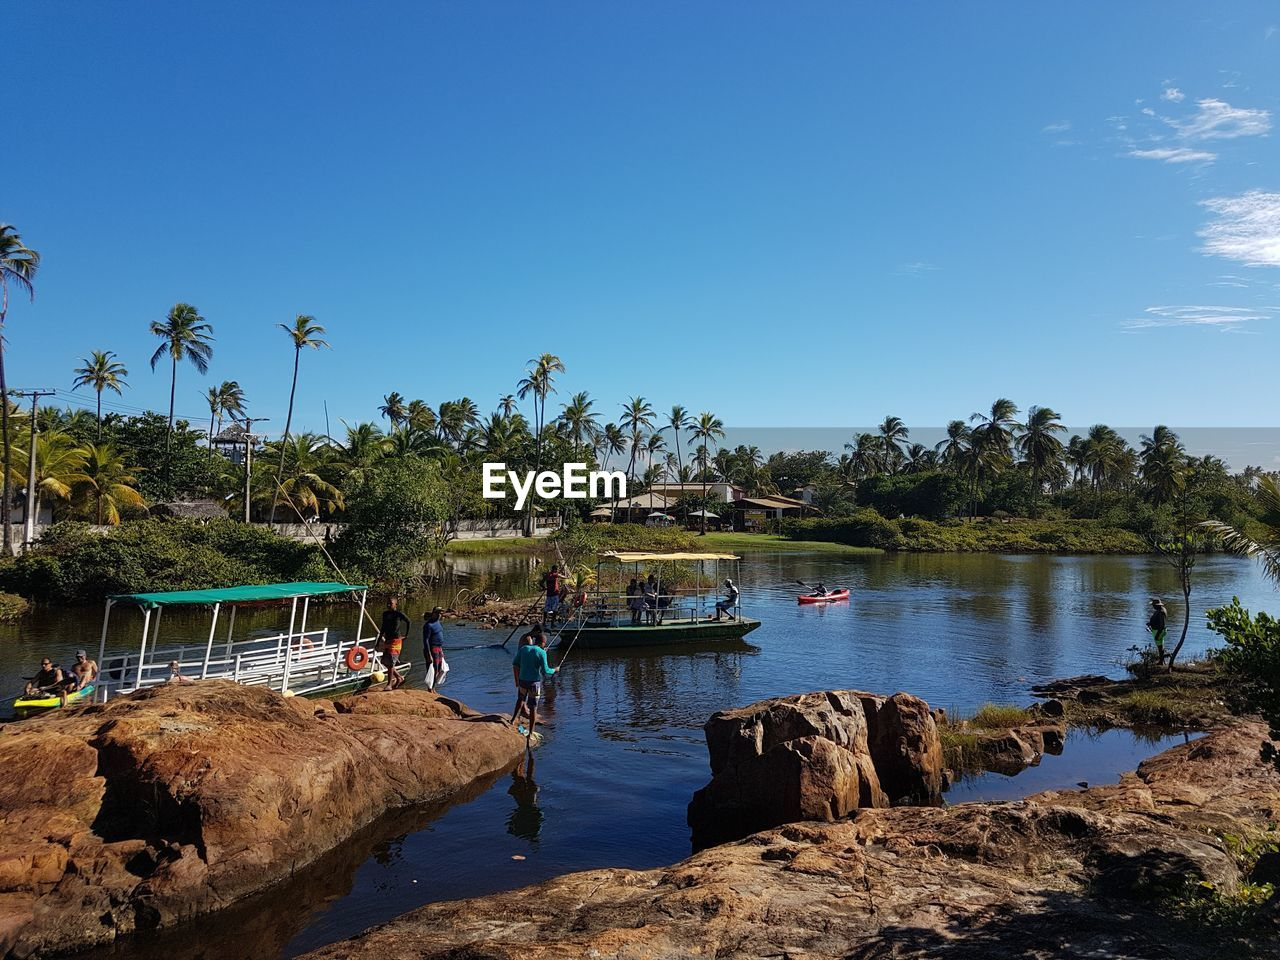 water, sky, tree, plant, palm tree, nature, beauty in nature, scenics - nature, tropical climate, transportation, blue, nautical vessel, day, mode of transportation, copy space, tranquility, group of people, river, rock, outdoors